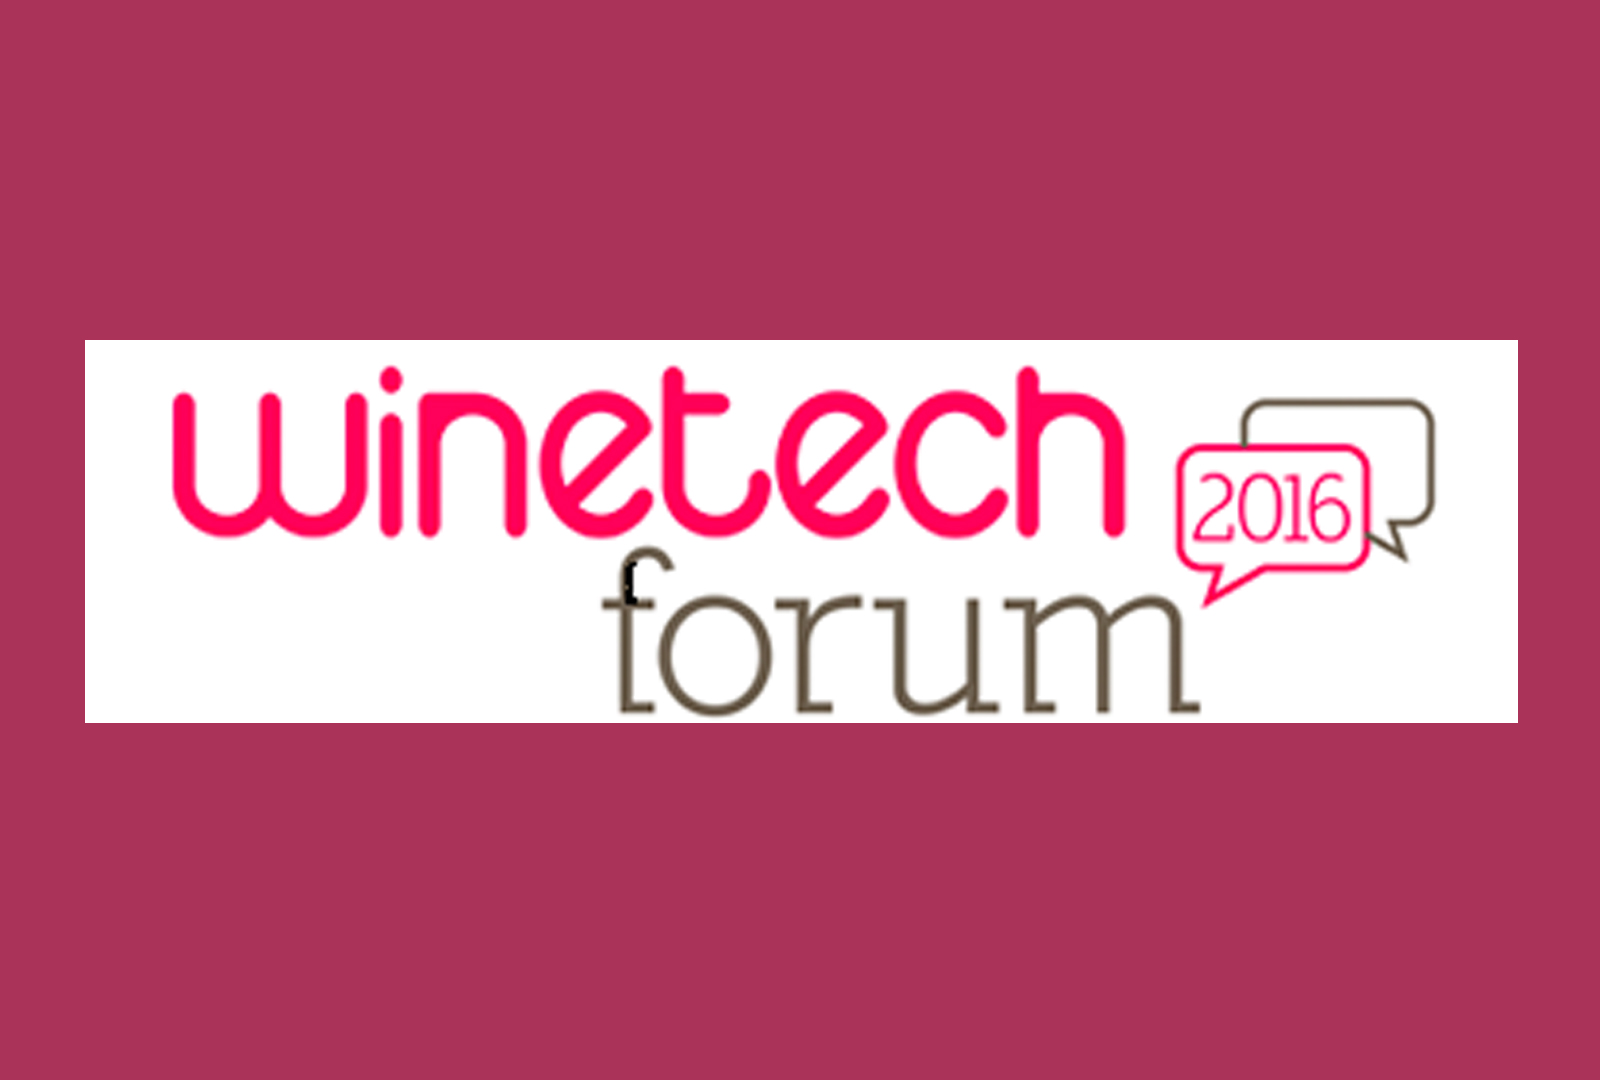 Winetech Forum 2016.